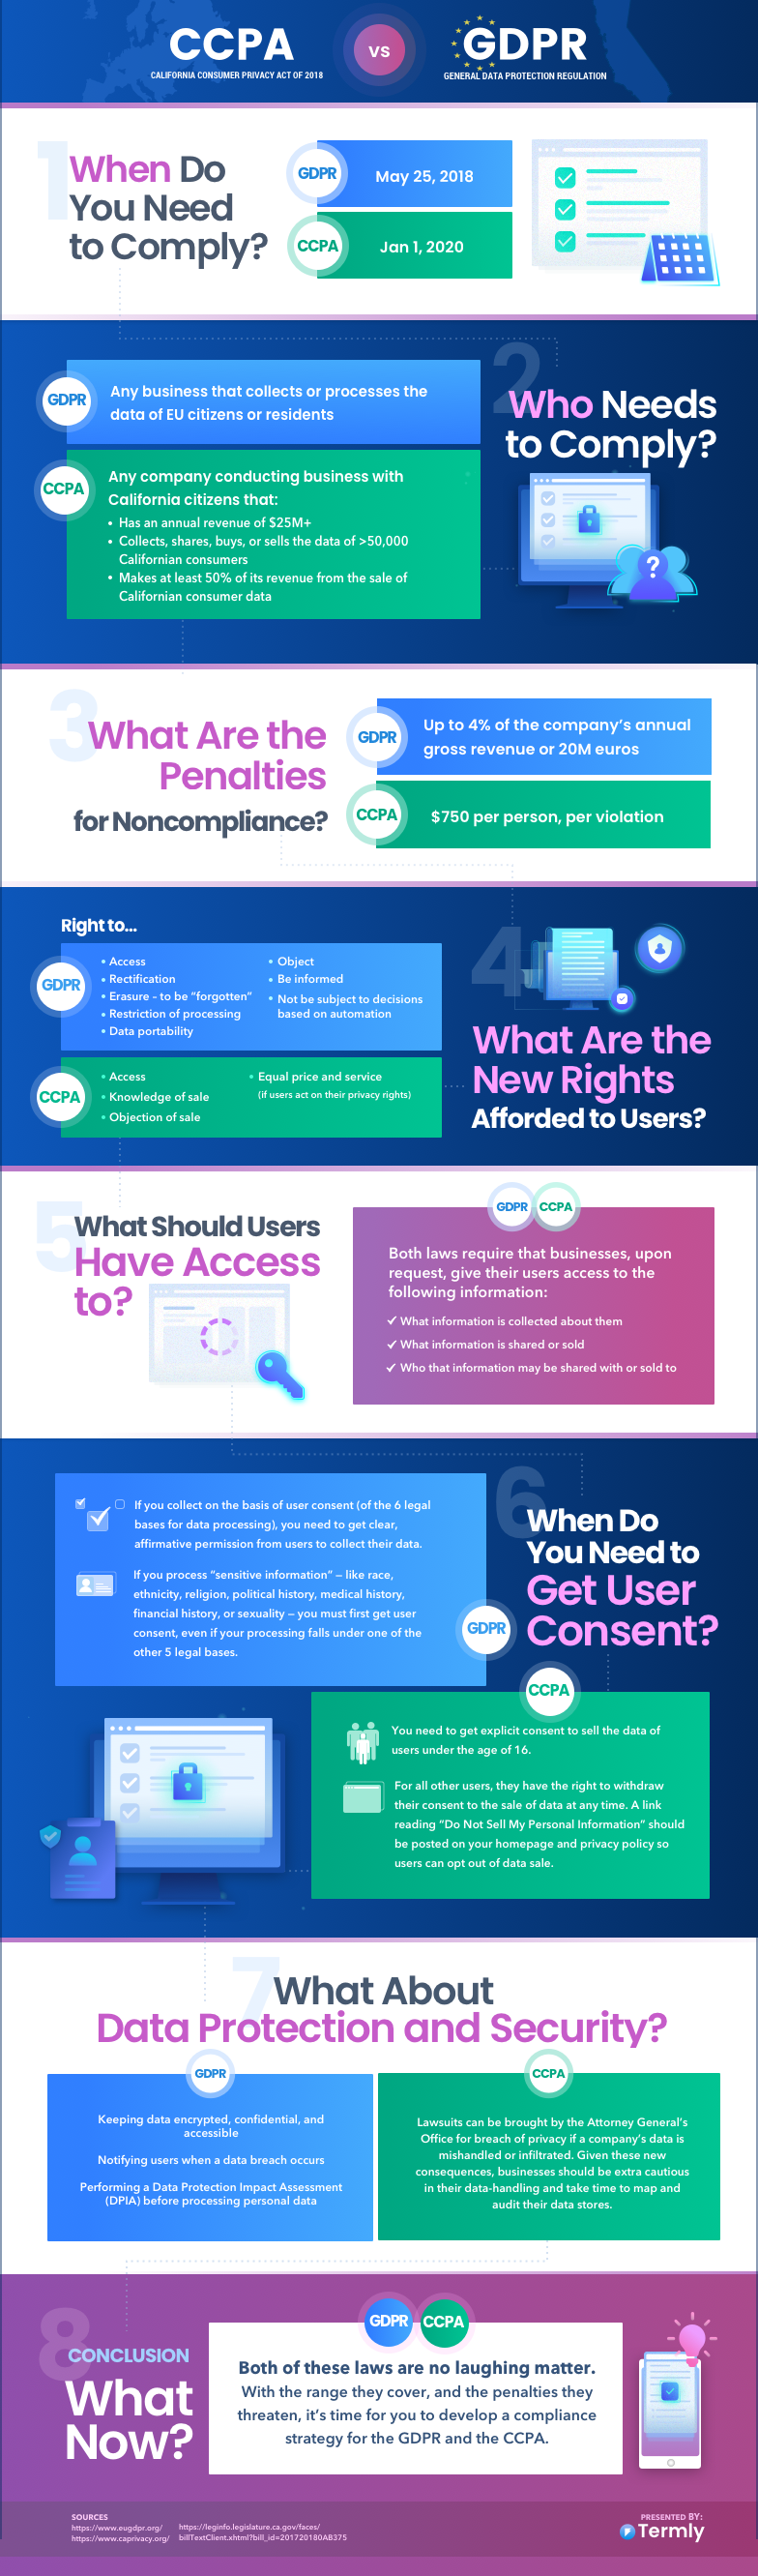 infographic ccpa gdpr